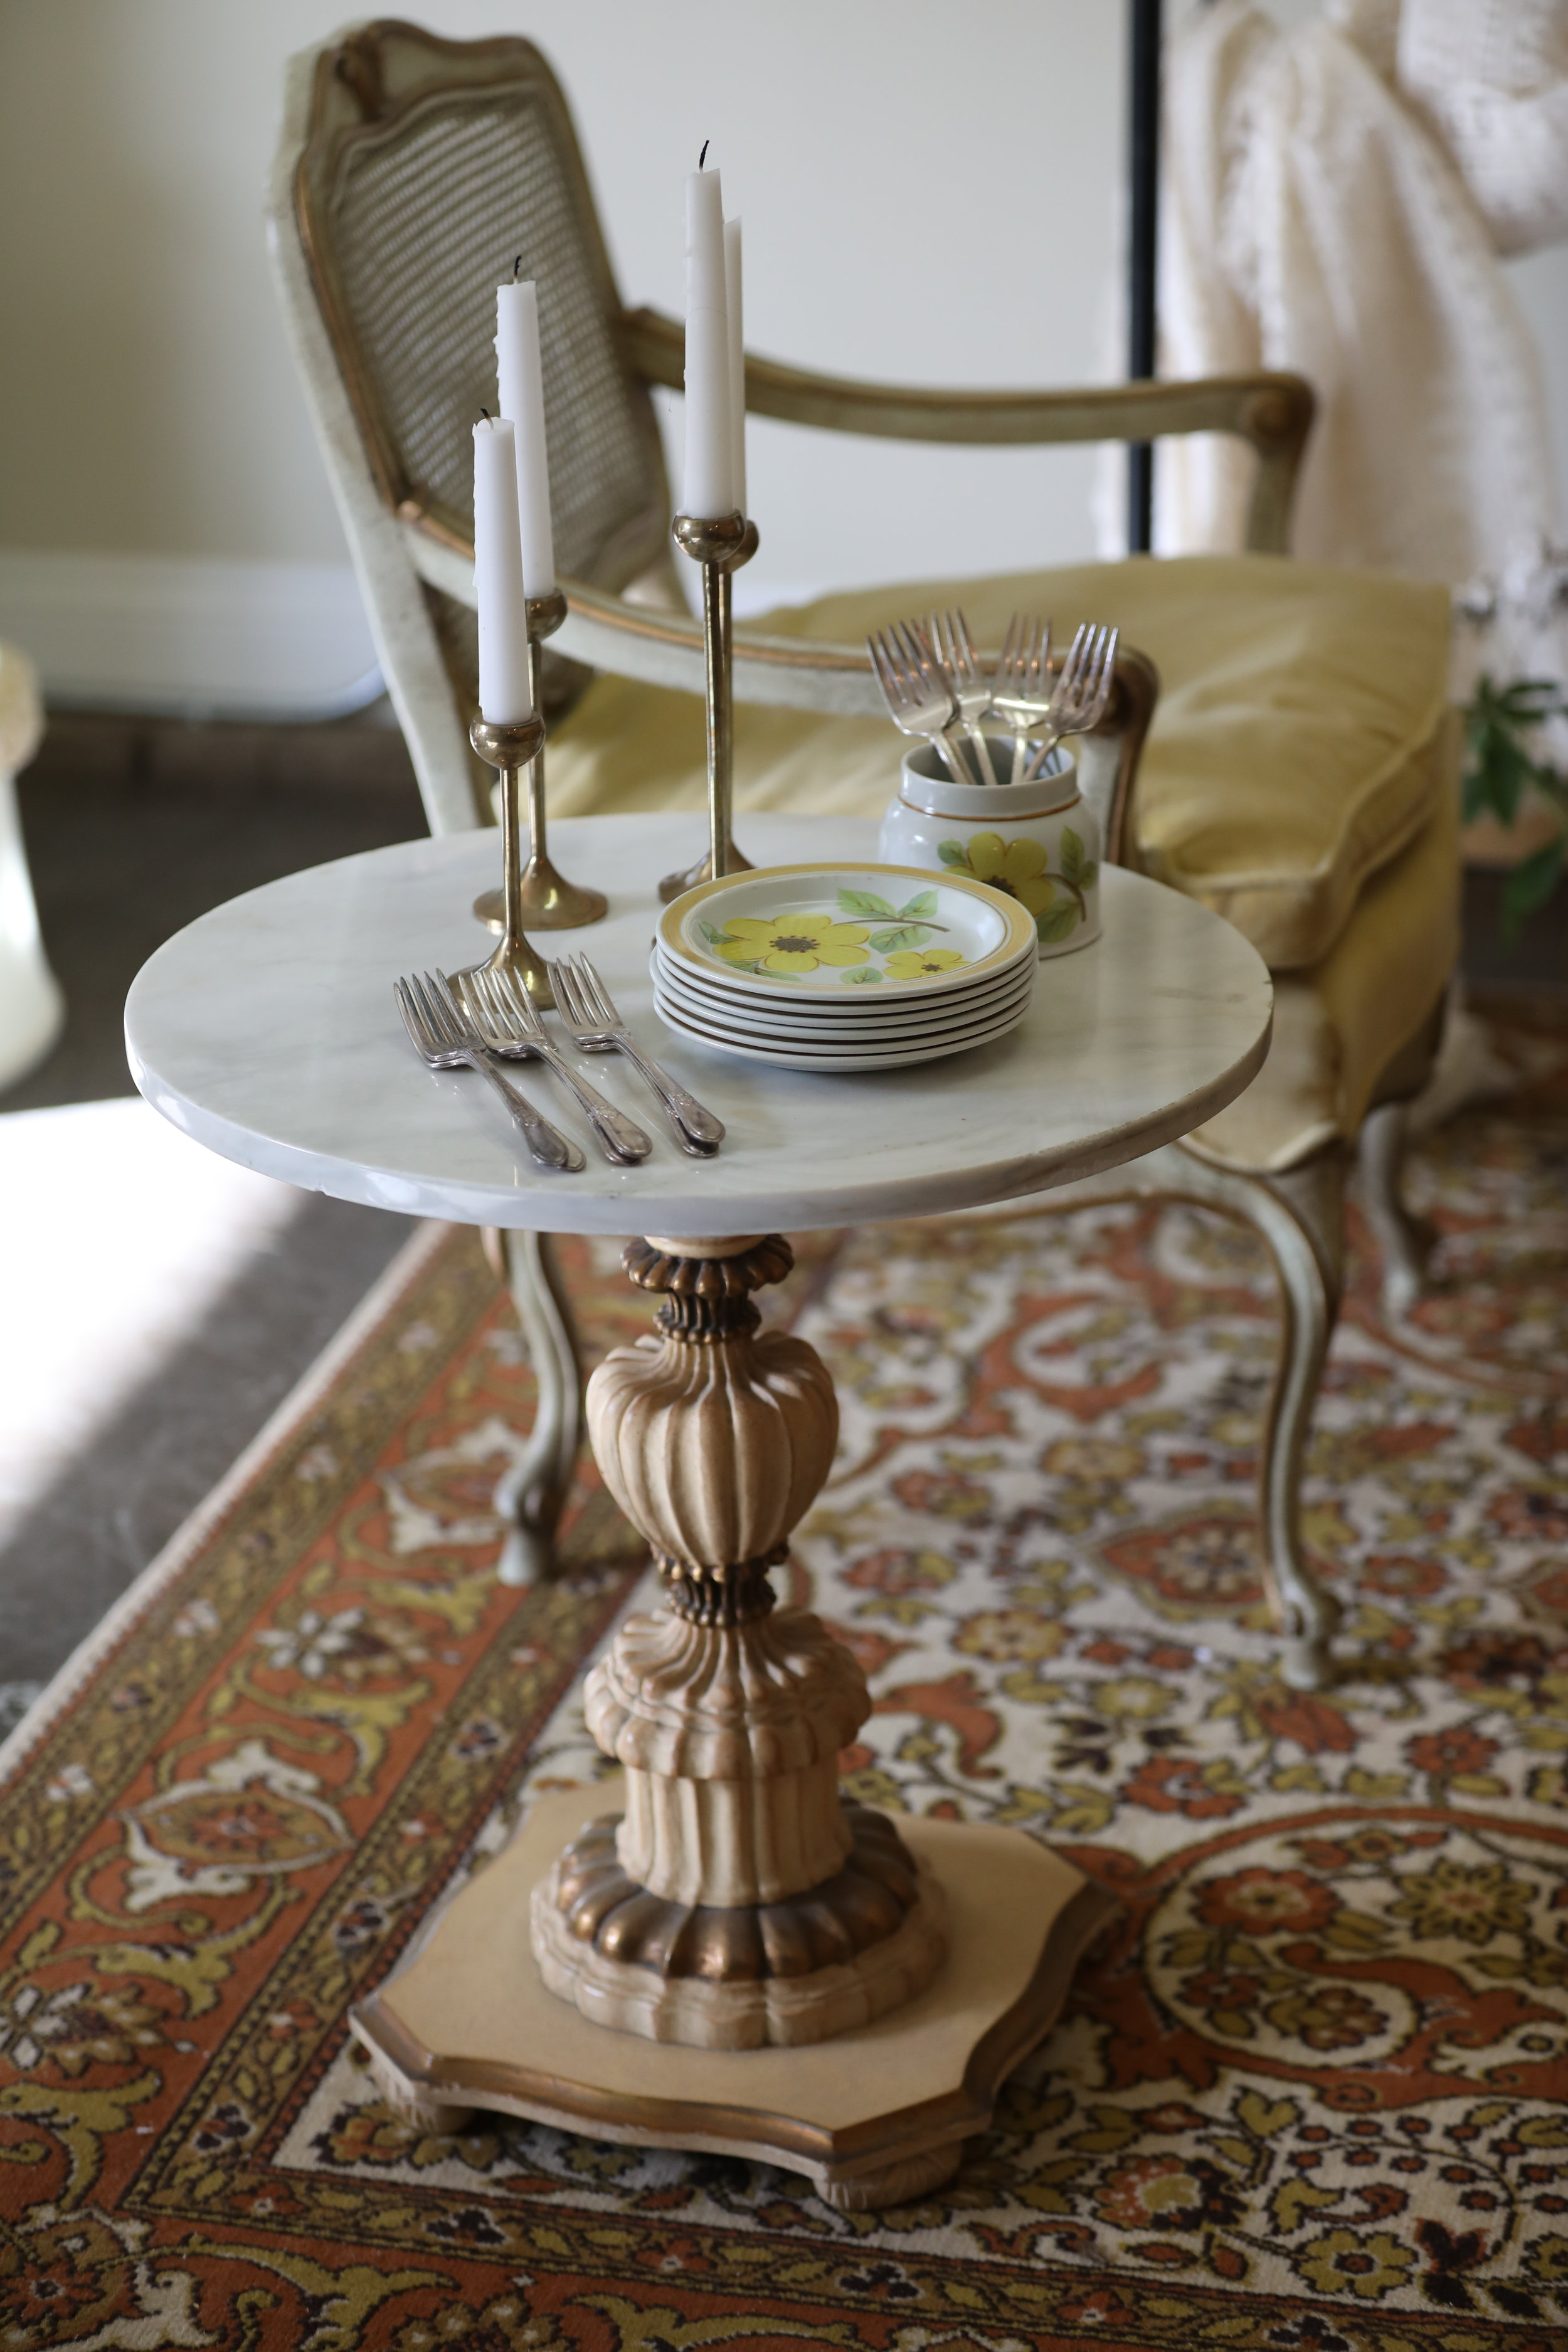 Vintage furniture for rent from Birdie in a Barn in Murrieta.  Hollywood regency side table and French provincial chair with vintage rug.